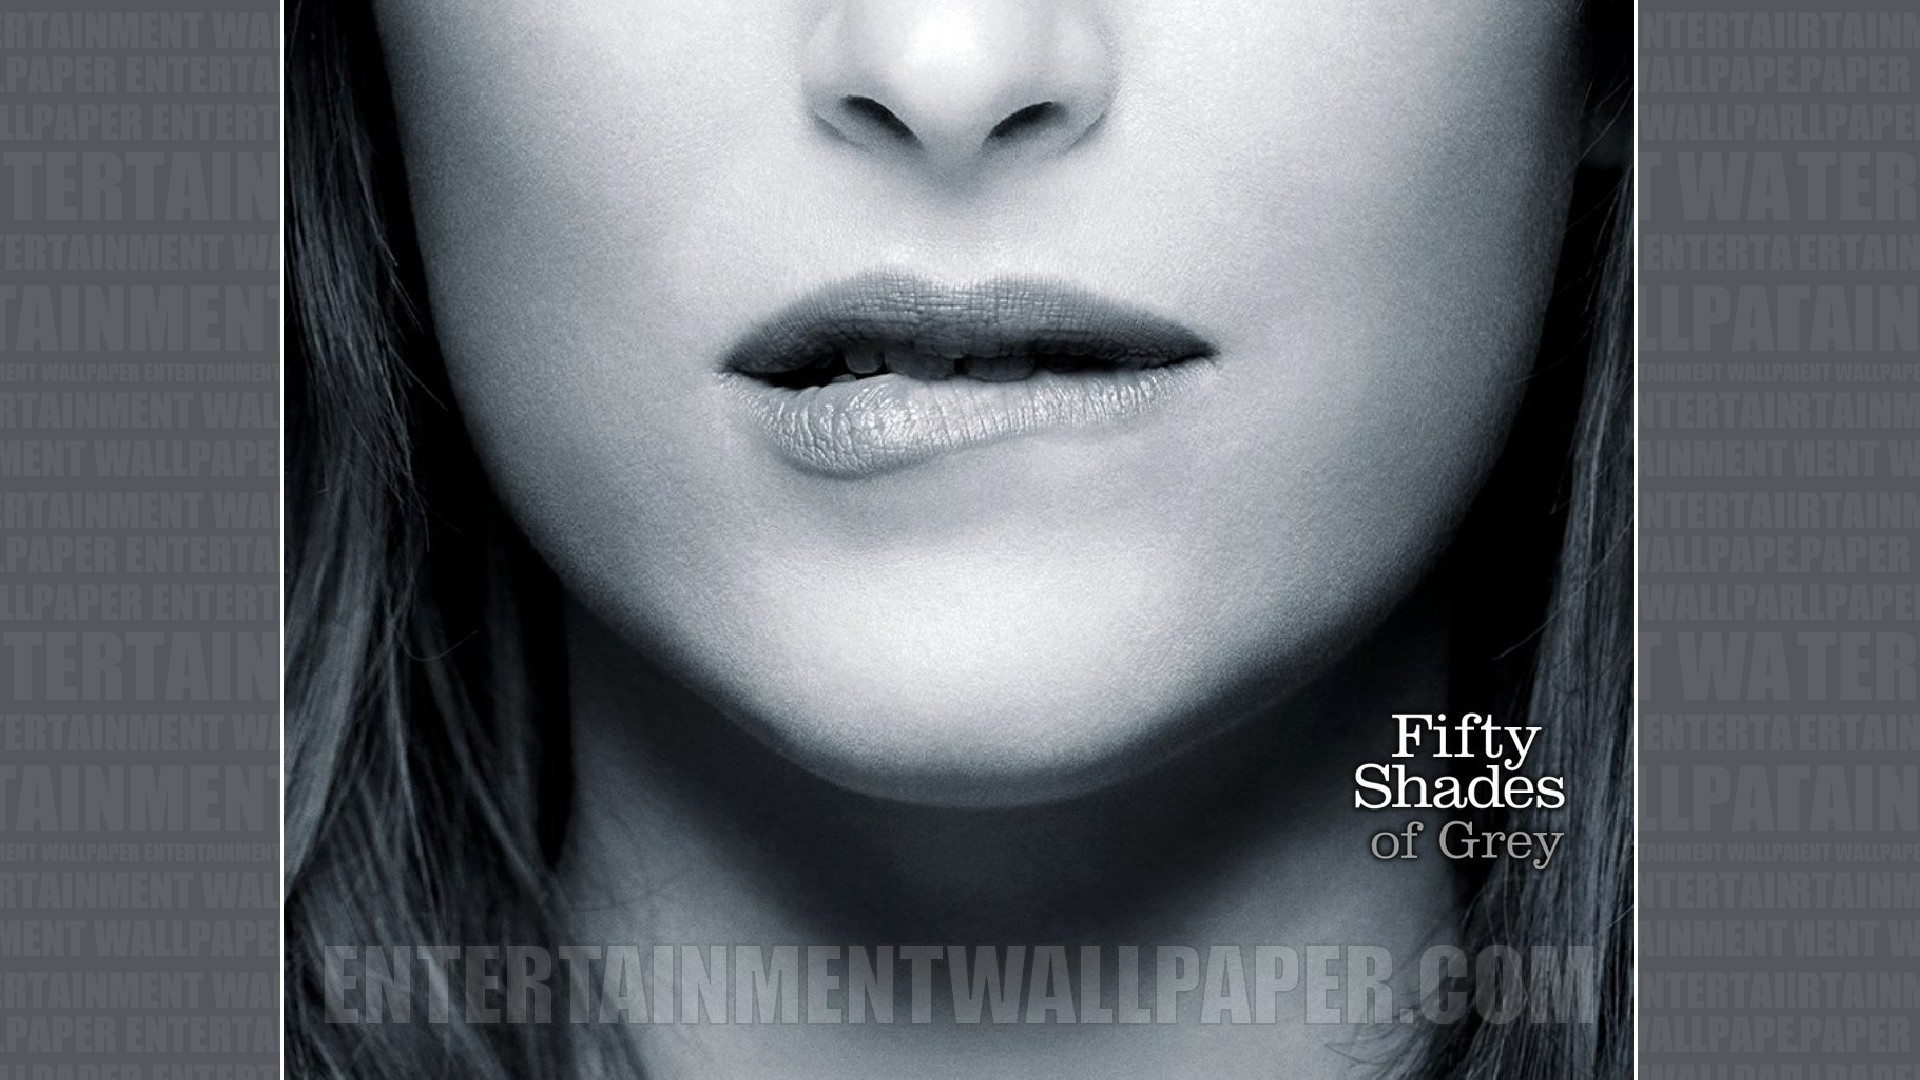 Fifty Shades of Grey Wallpaper – Original size, download now.